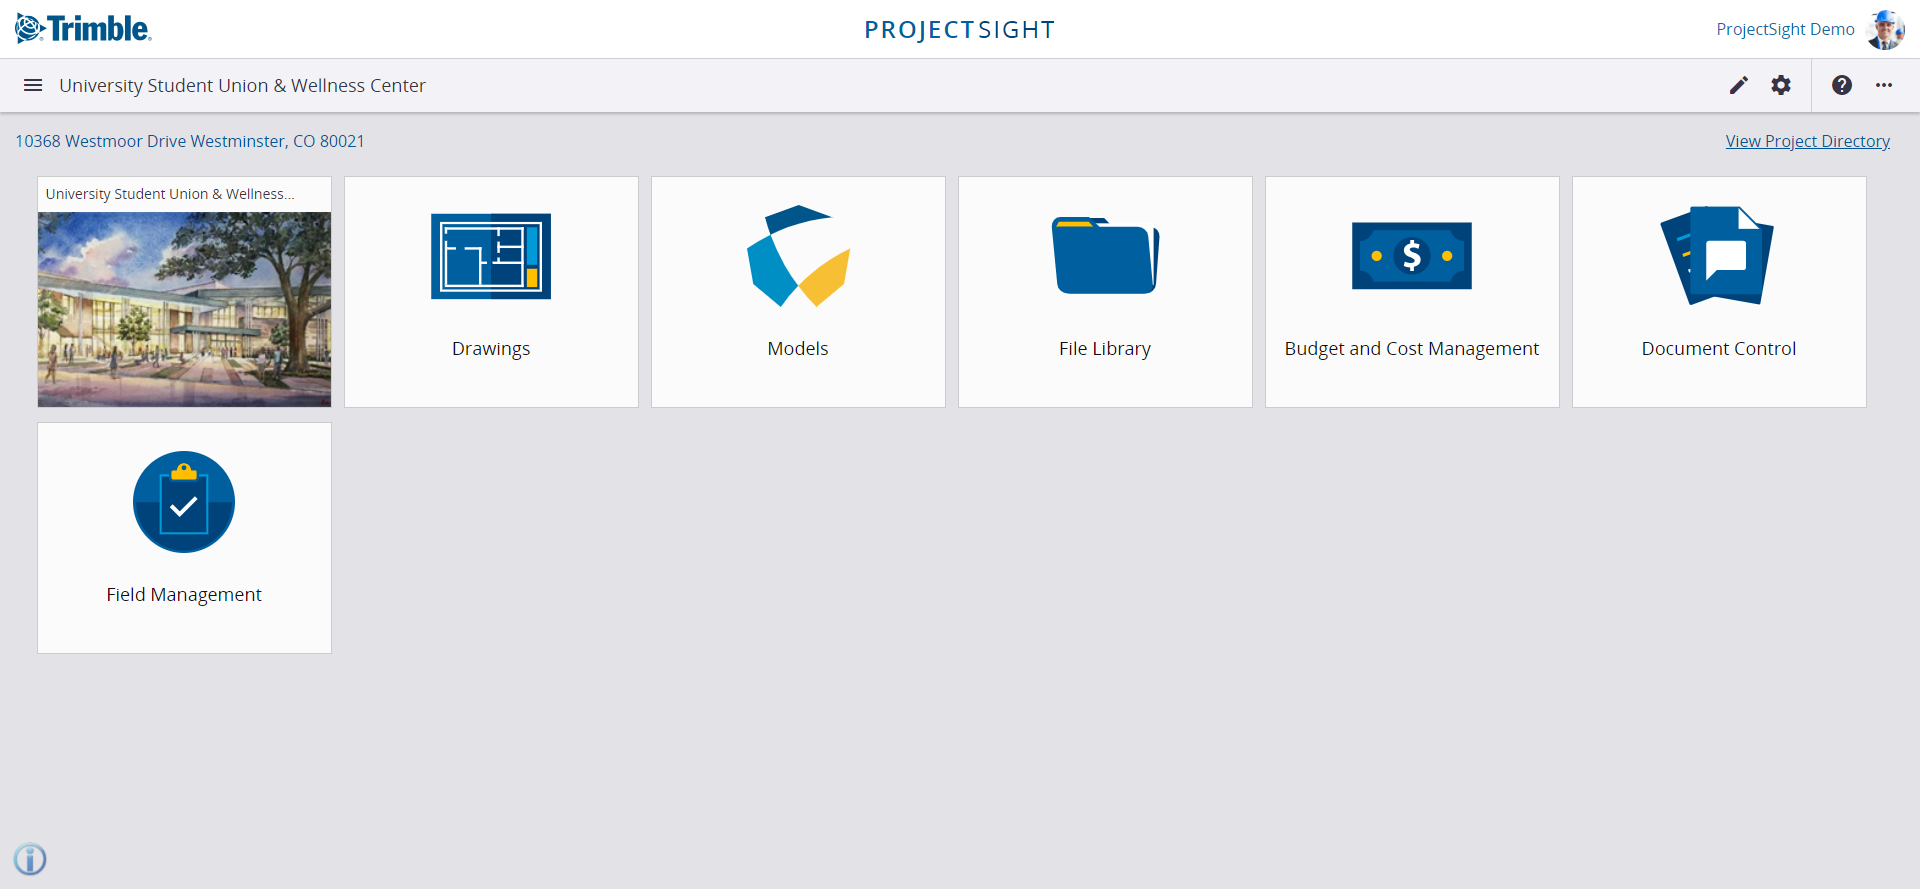 Project specific dashboard